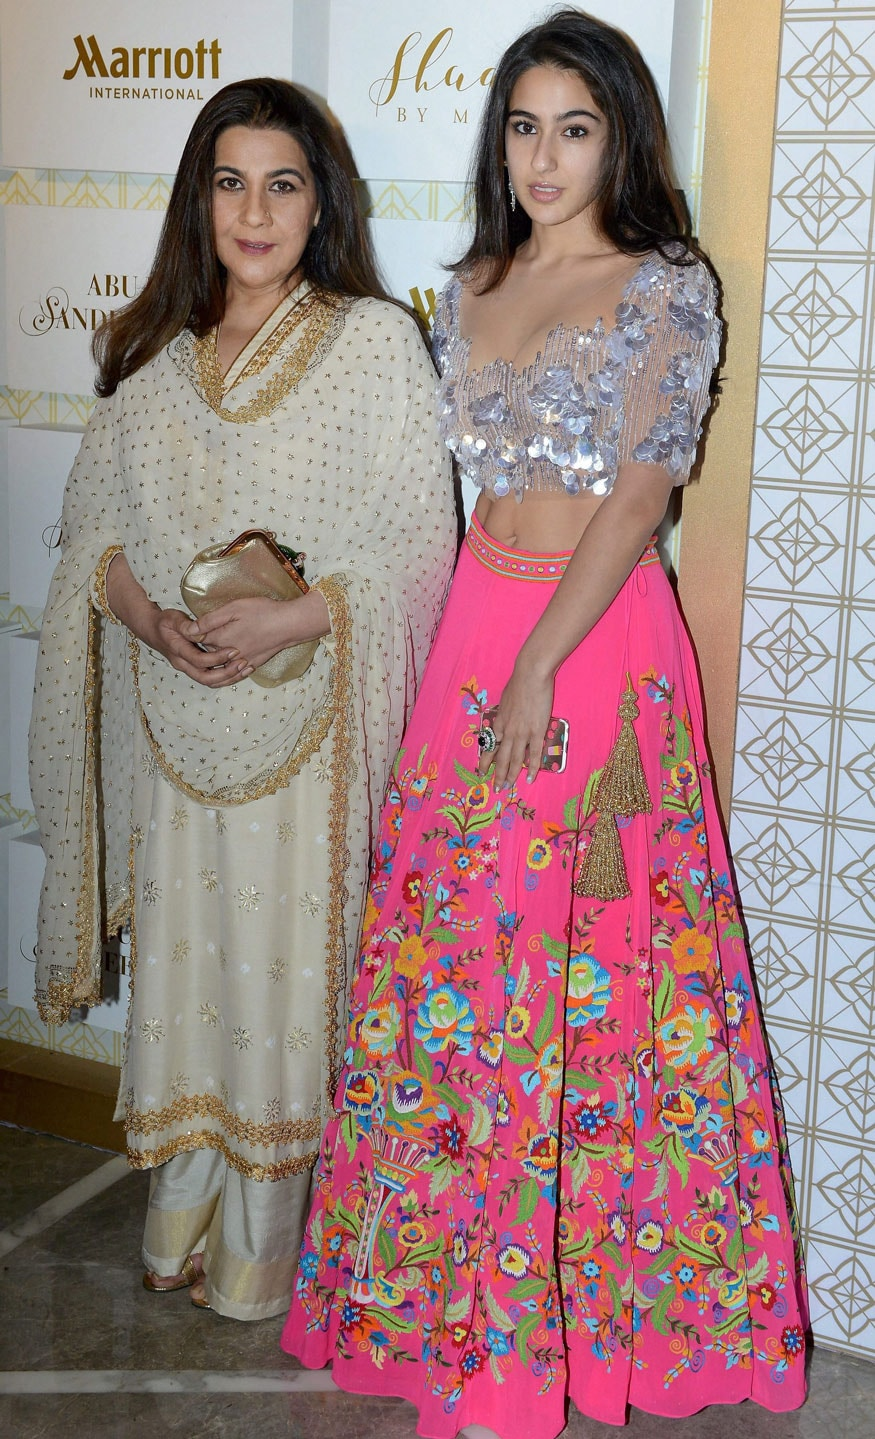 Actress Amrita Singh and her daughter Sara Ali Khan at a fashion show in New Delhi on Friday. (Image: PTI)